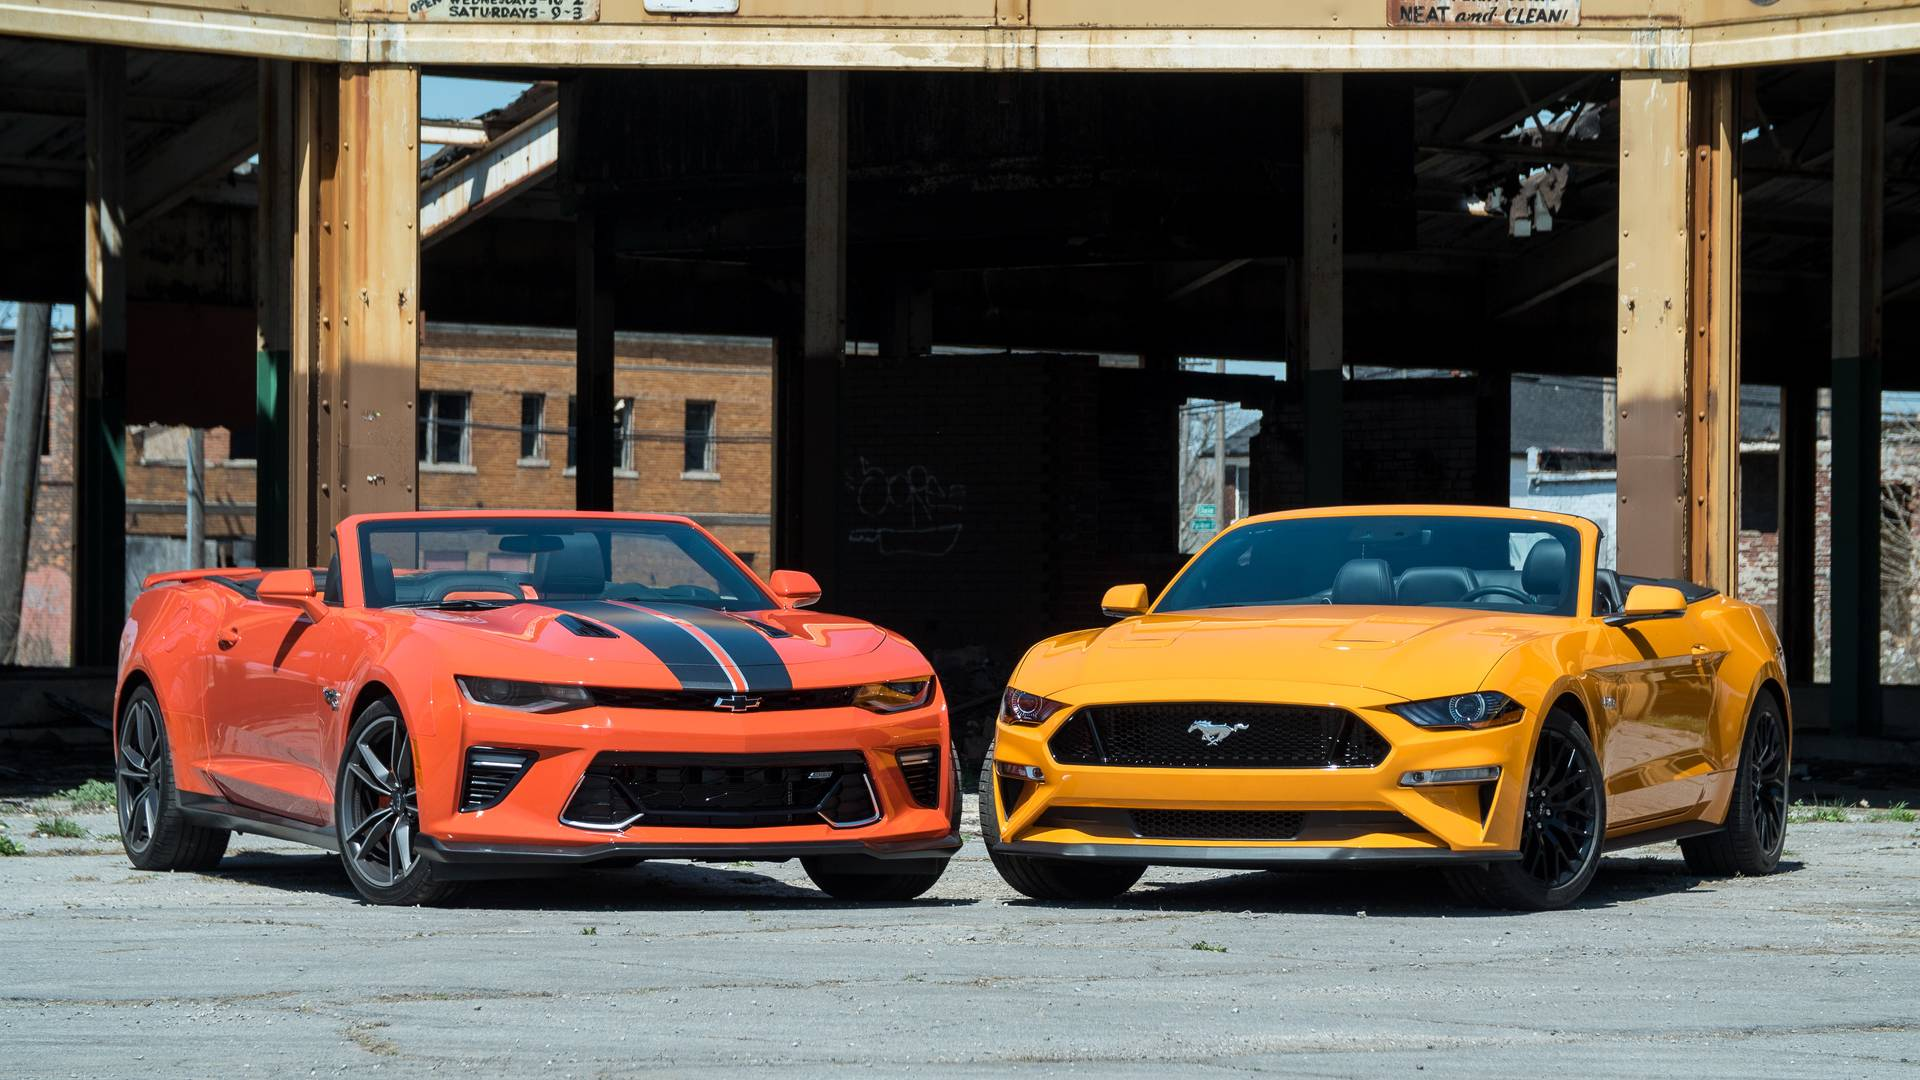 Chevy camaro ss vs ford mustang gt top down tussle